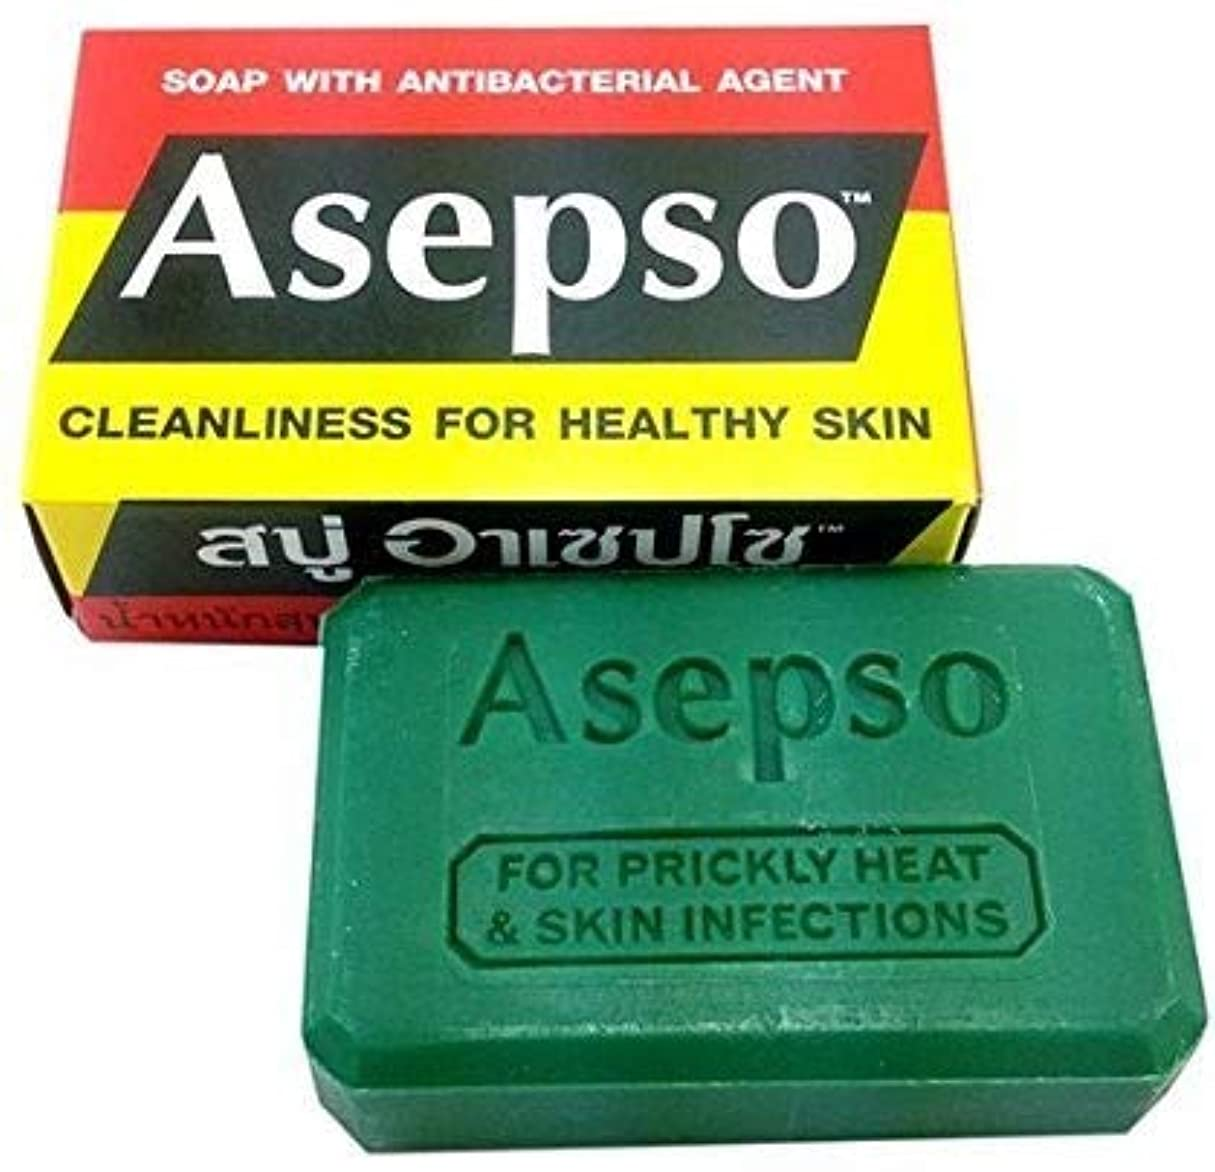 宣教師コットン上げるNi Yom Thai shop Asepso Soap with Antibacterial Agent 80 Grams